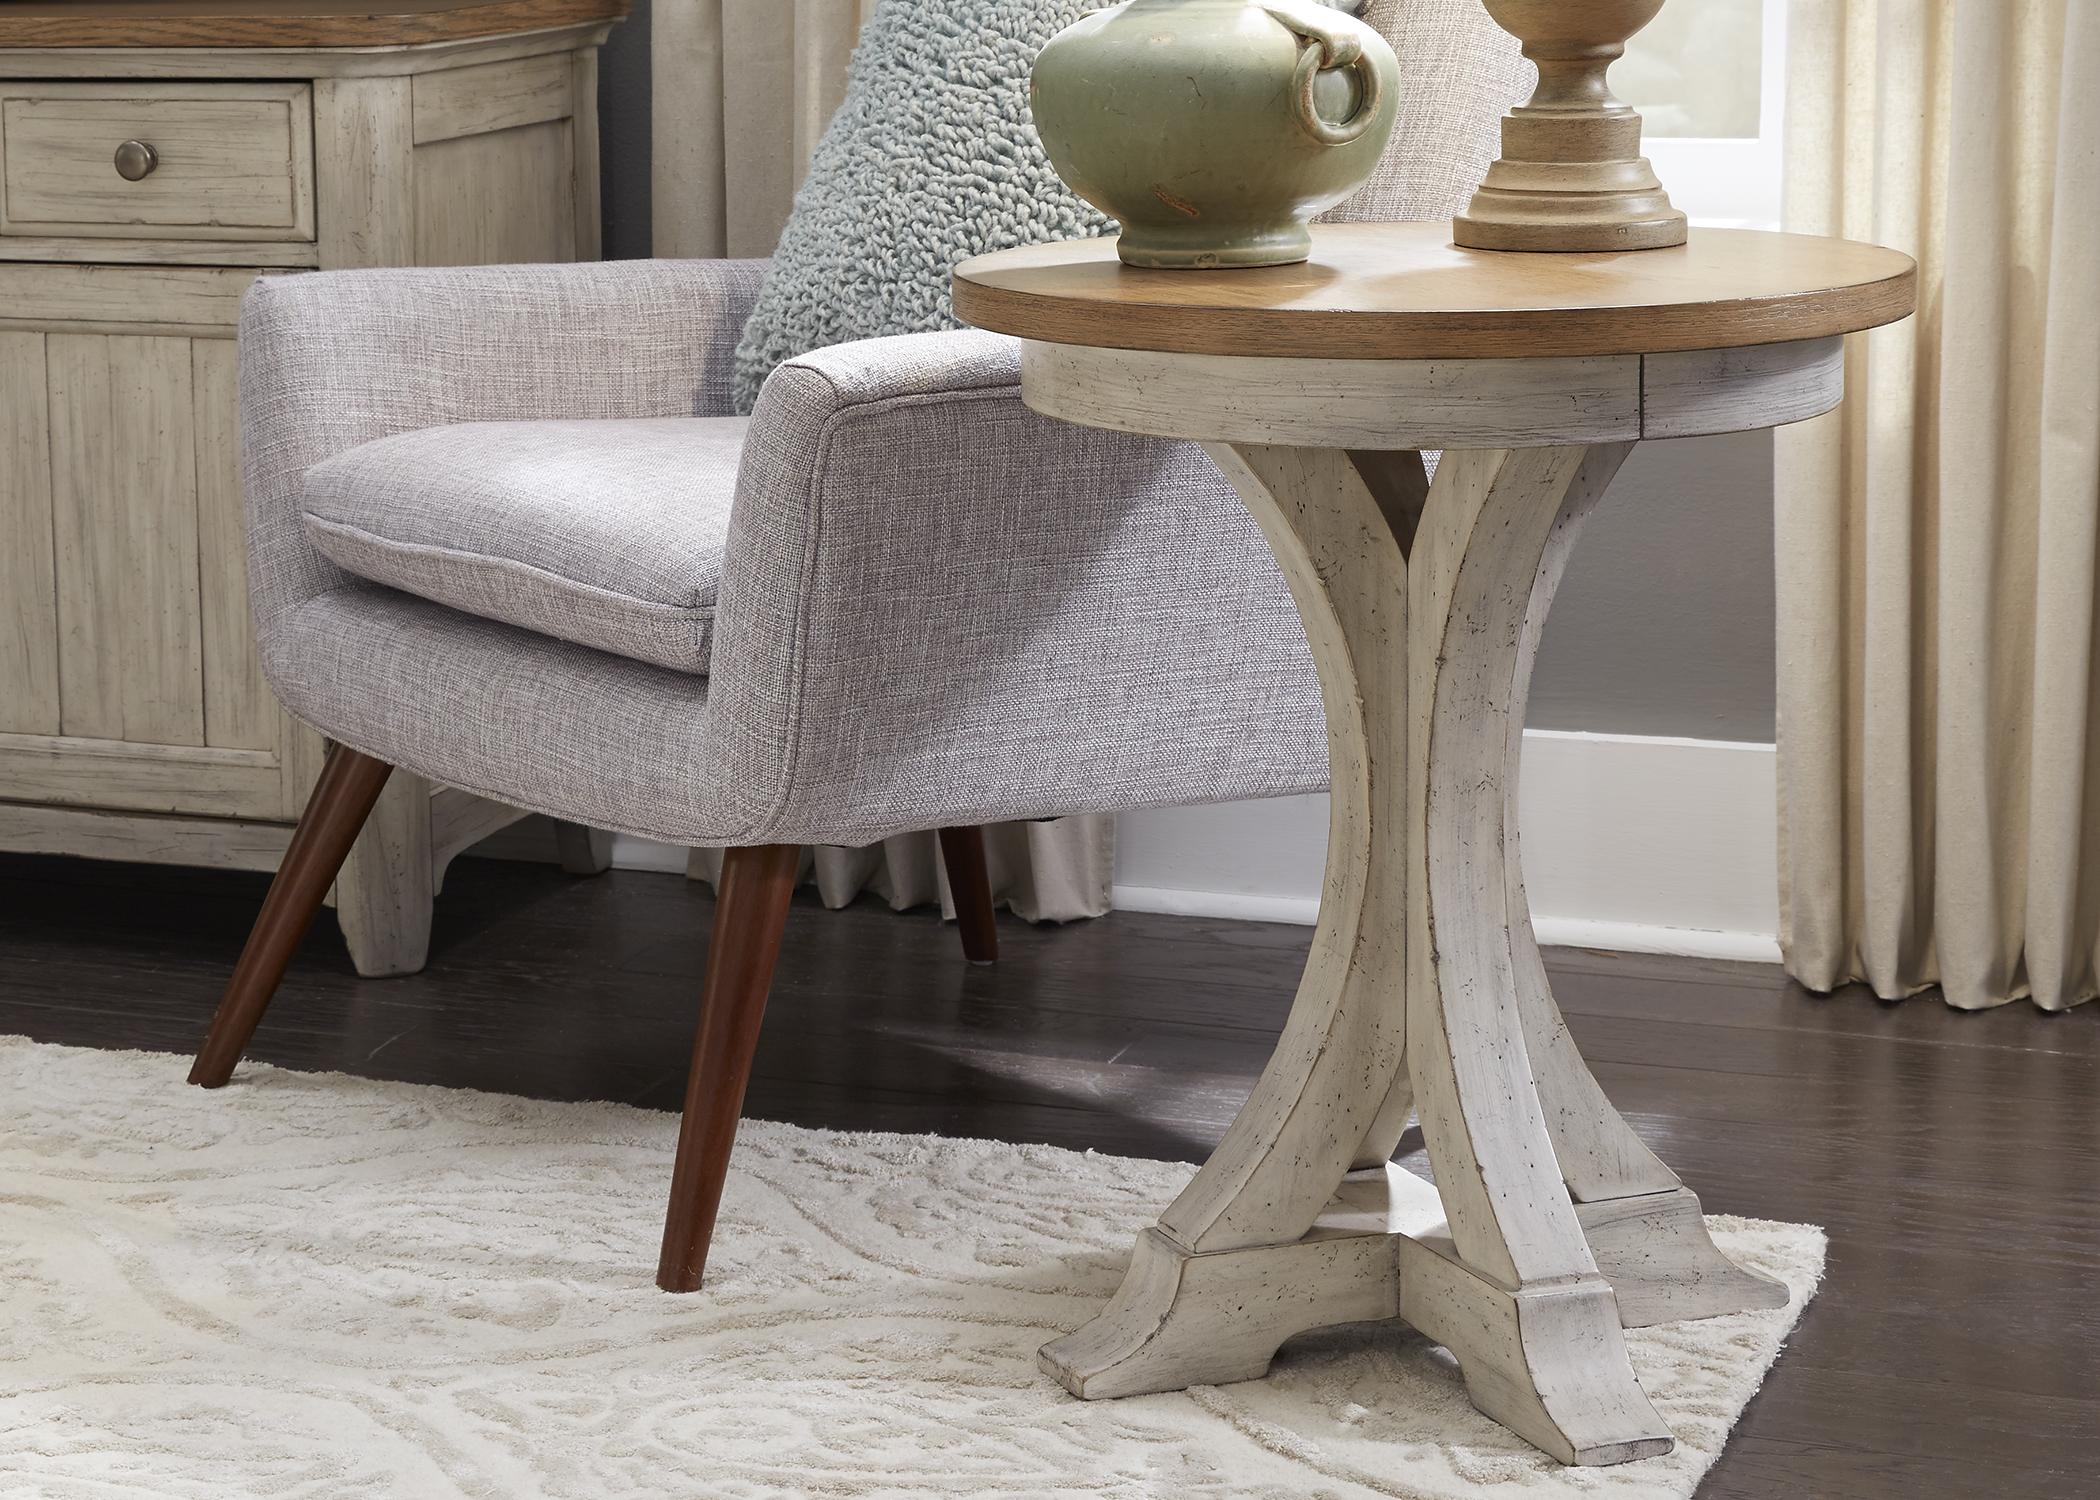 liberty farmhouse reimagined antique white round chair side table coffee and end sets shattered glass grey accent ashley laflorn small lamp study furniture floating bedside ikea